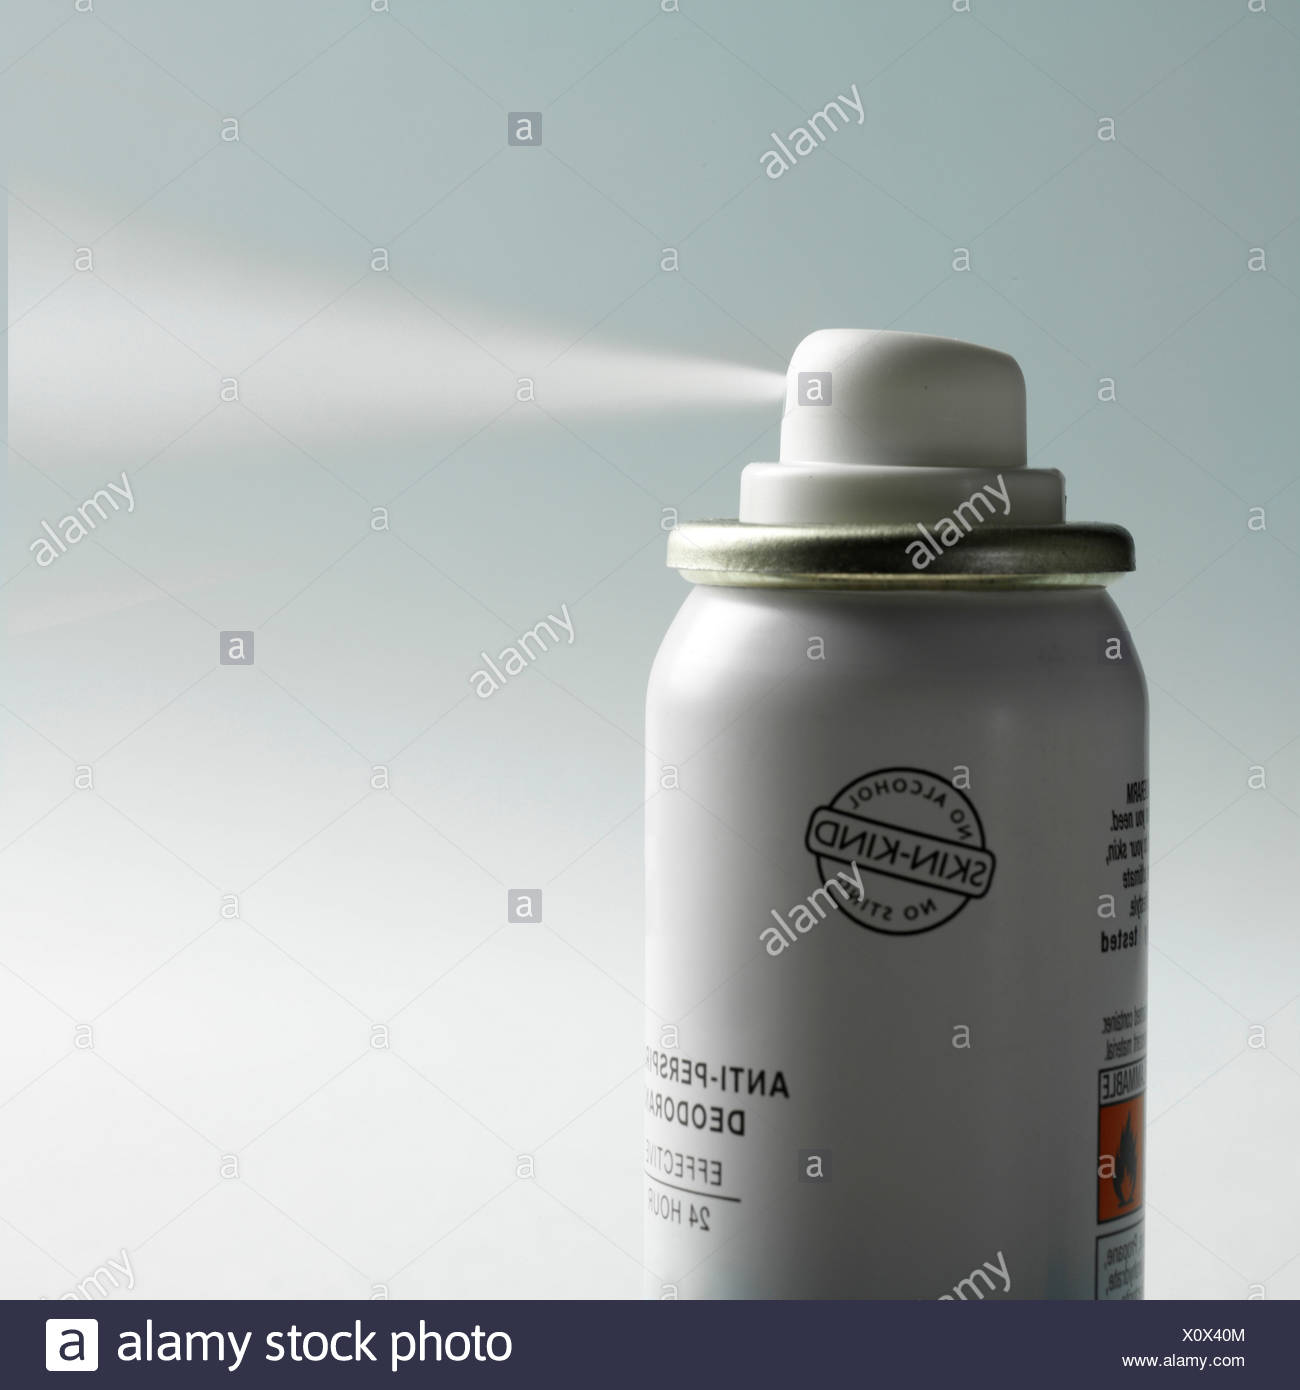 Antiperspirant deodorant spray - Stock Image